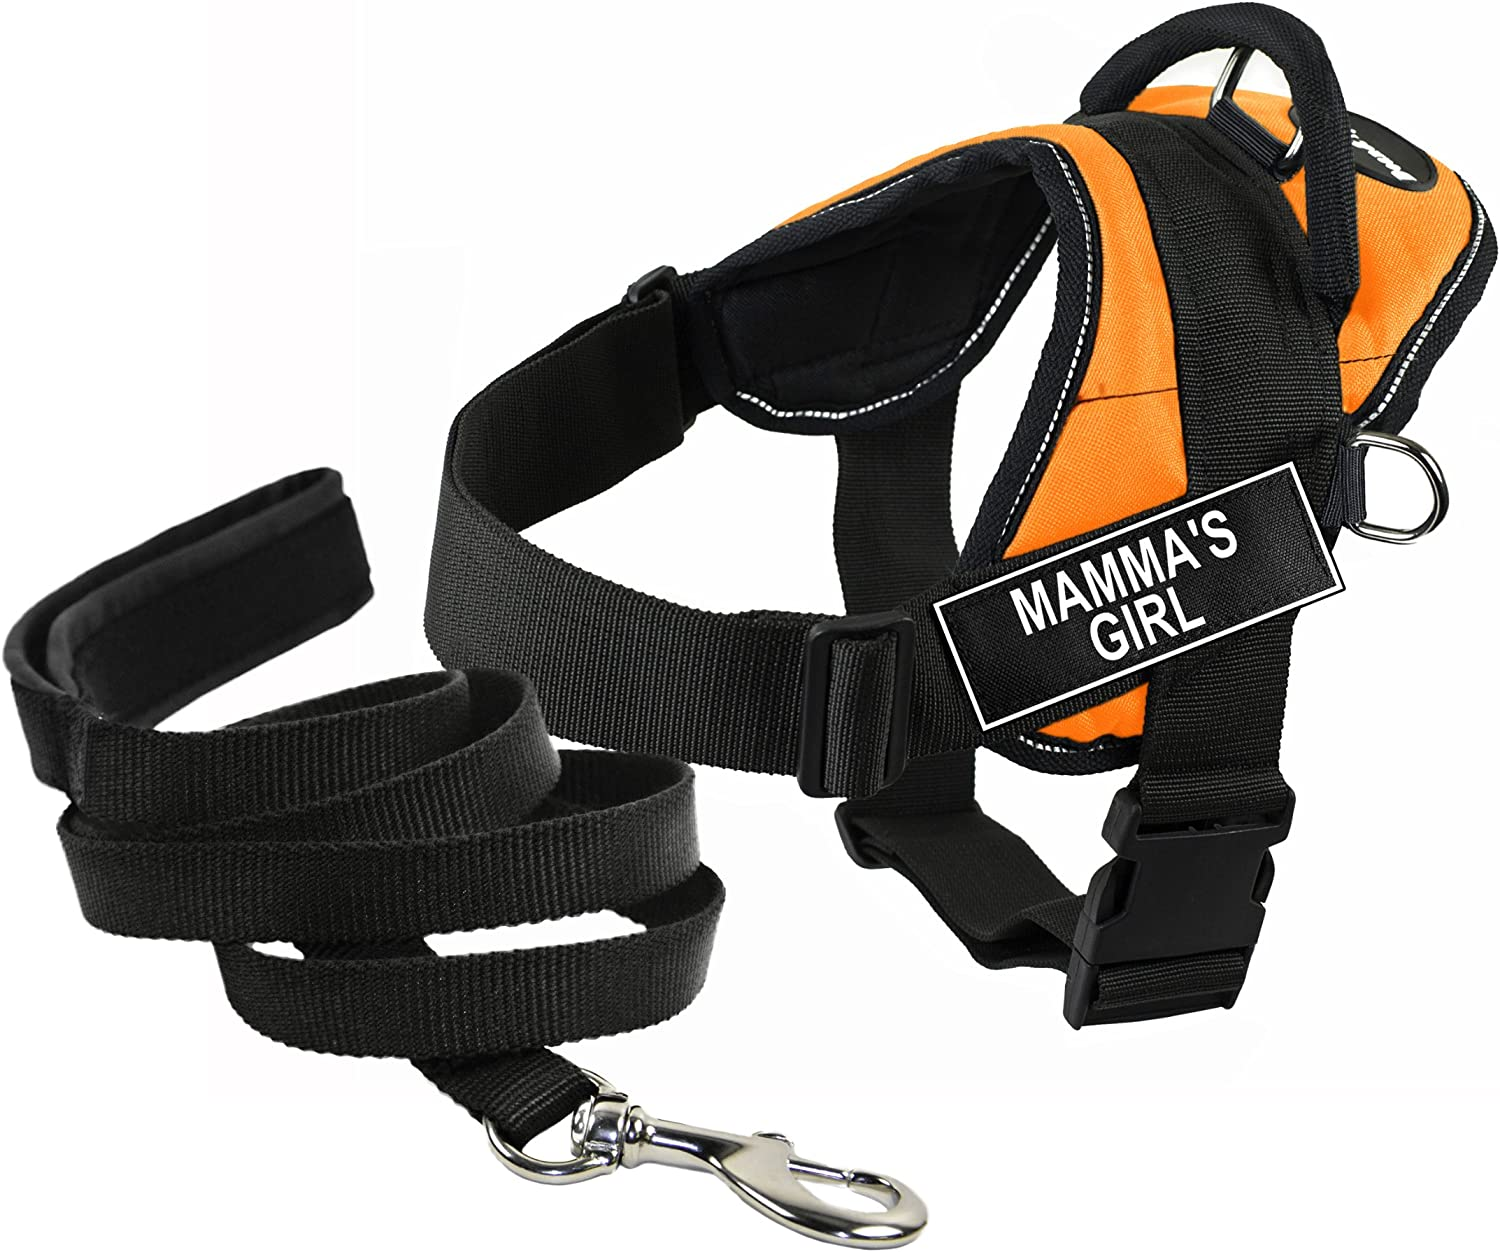 Dean & Tyler's DT Works orange MAMMA'S GIRL Harness, XSmall, with 6 ft Padded Puppy Leash.